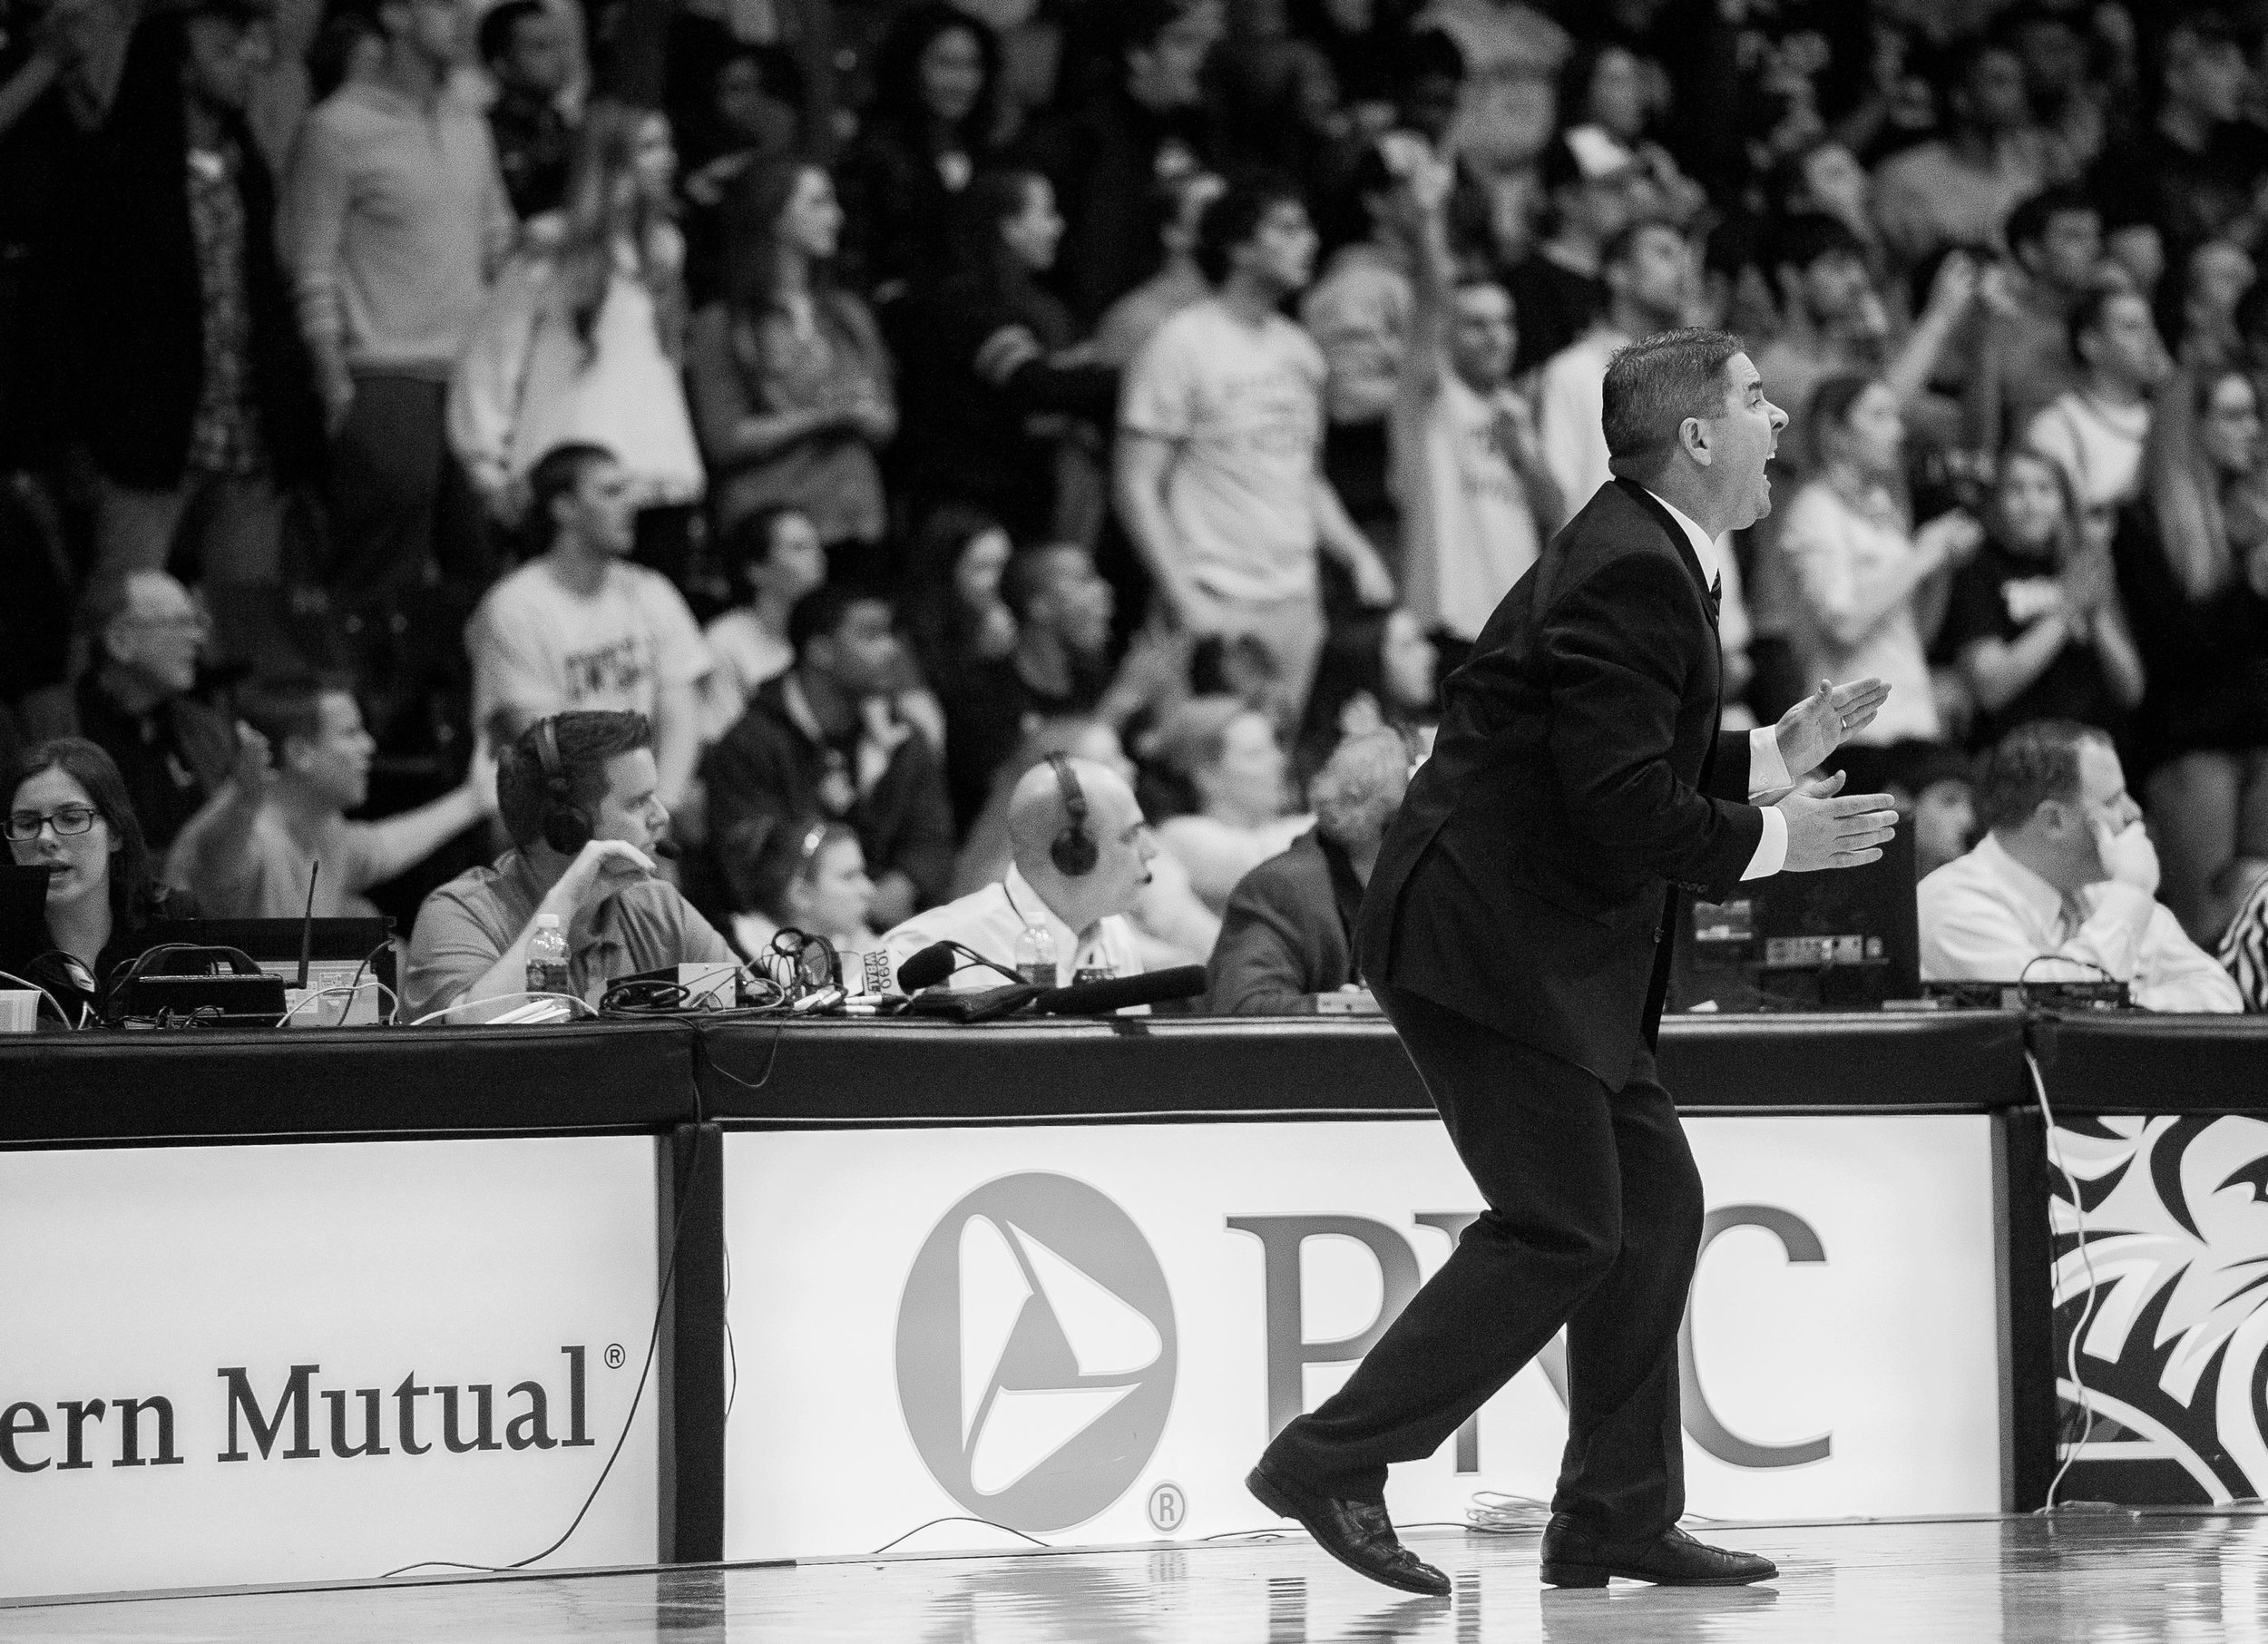 Towson University men's basketball head coach Pat Skerry screams across the court while the clock runs short during the last game of their 2012-2013 season on March 2, 2013 in Baltimore, Md.